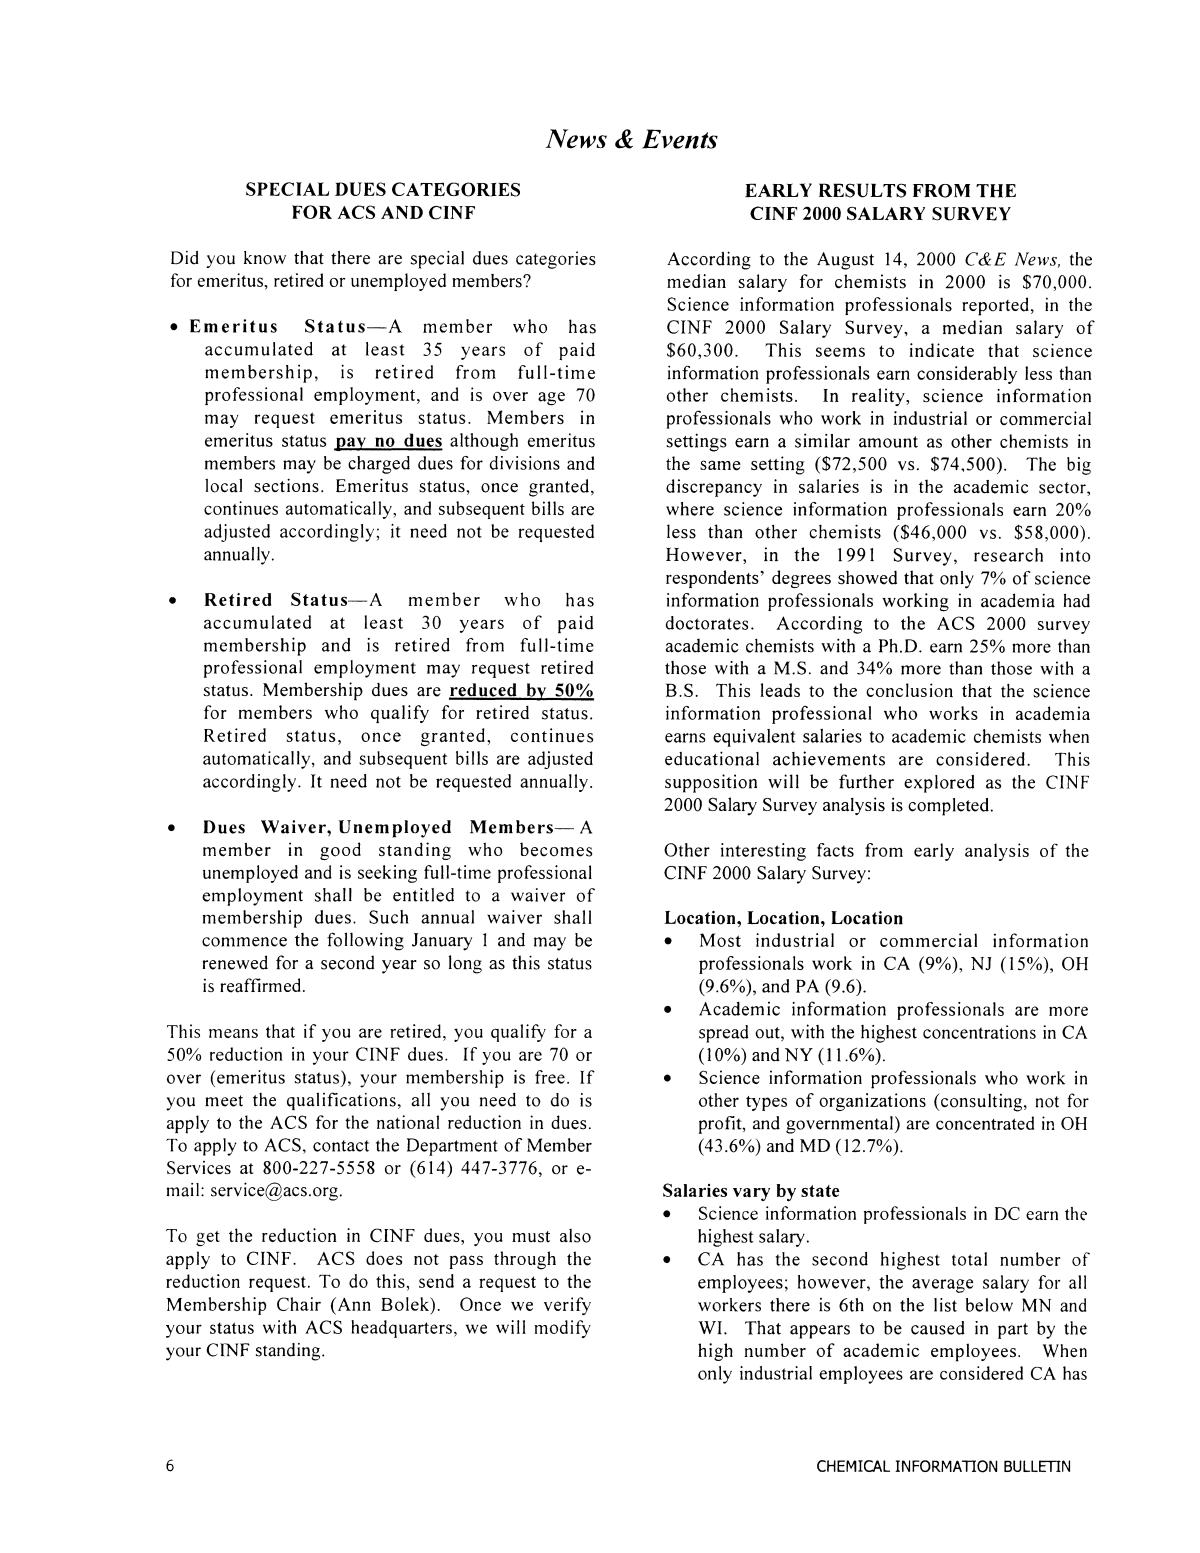 Chemical Information Bulletin, Volume 53 Number 2, Fall 2001                                                                                                      6